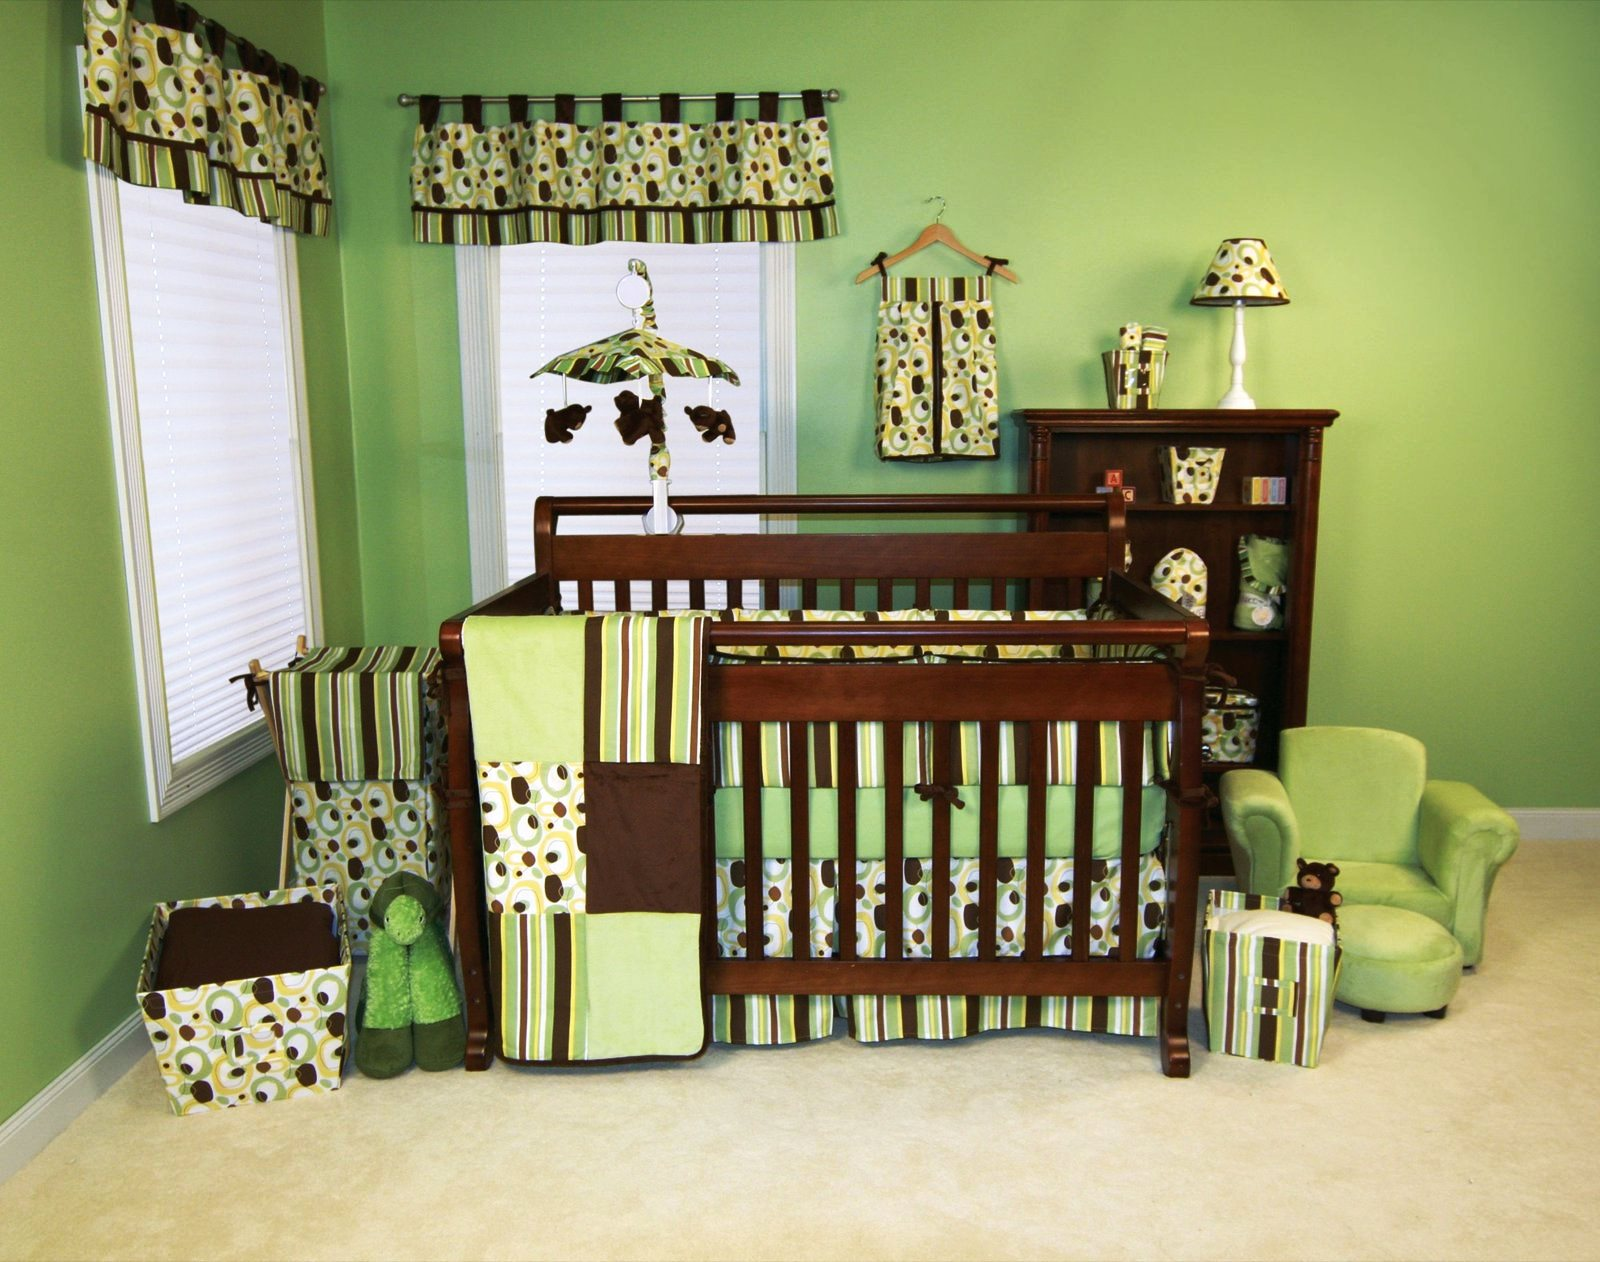 Baby Boy Room With Green Theme And Awesome Design On Curtain Blanket Matters Box Cabinet